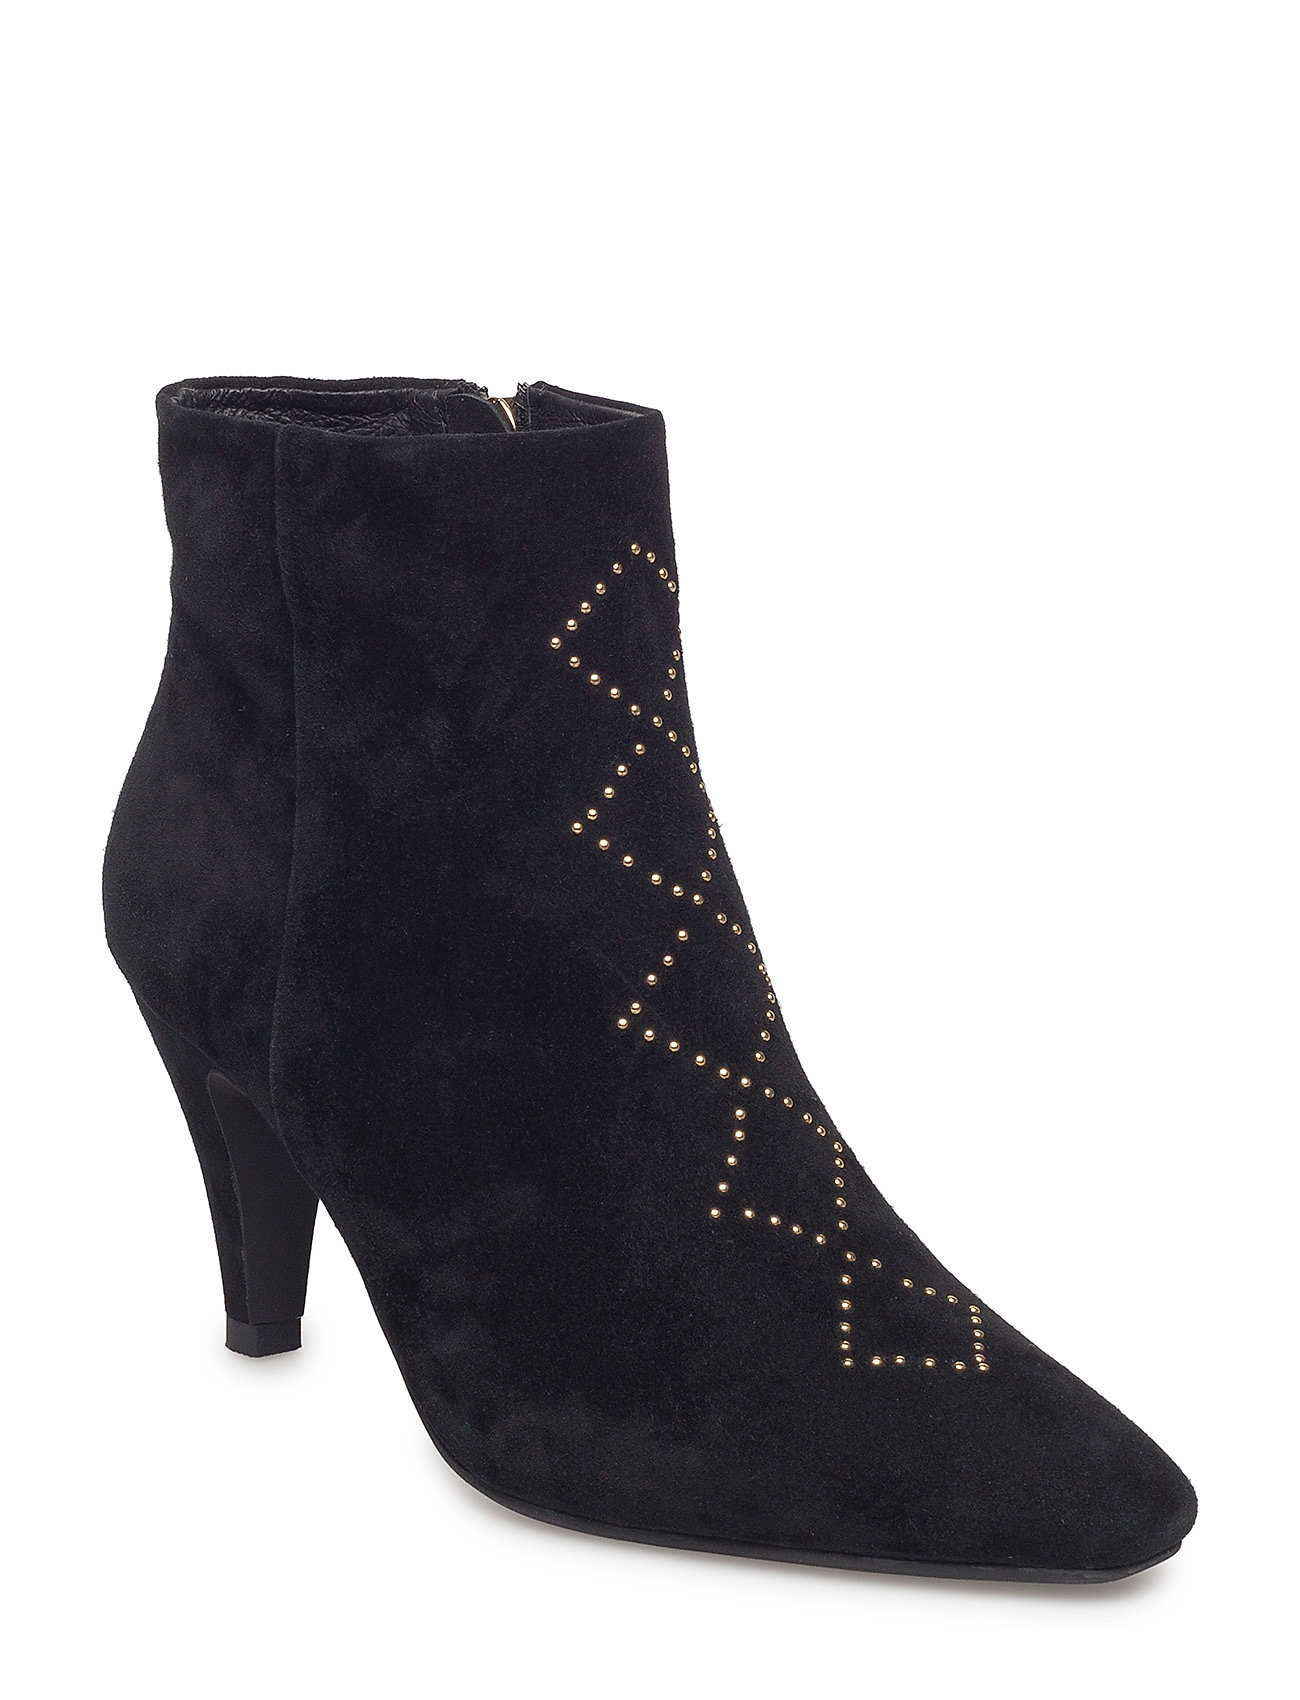 Image of Boot Suede Studs Shoes Boots Ankle Boots Ankle Boots With Heel Sort Sofie Schnoor (3067517873)